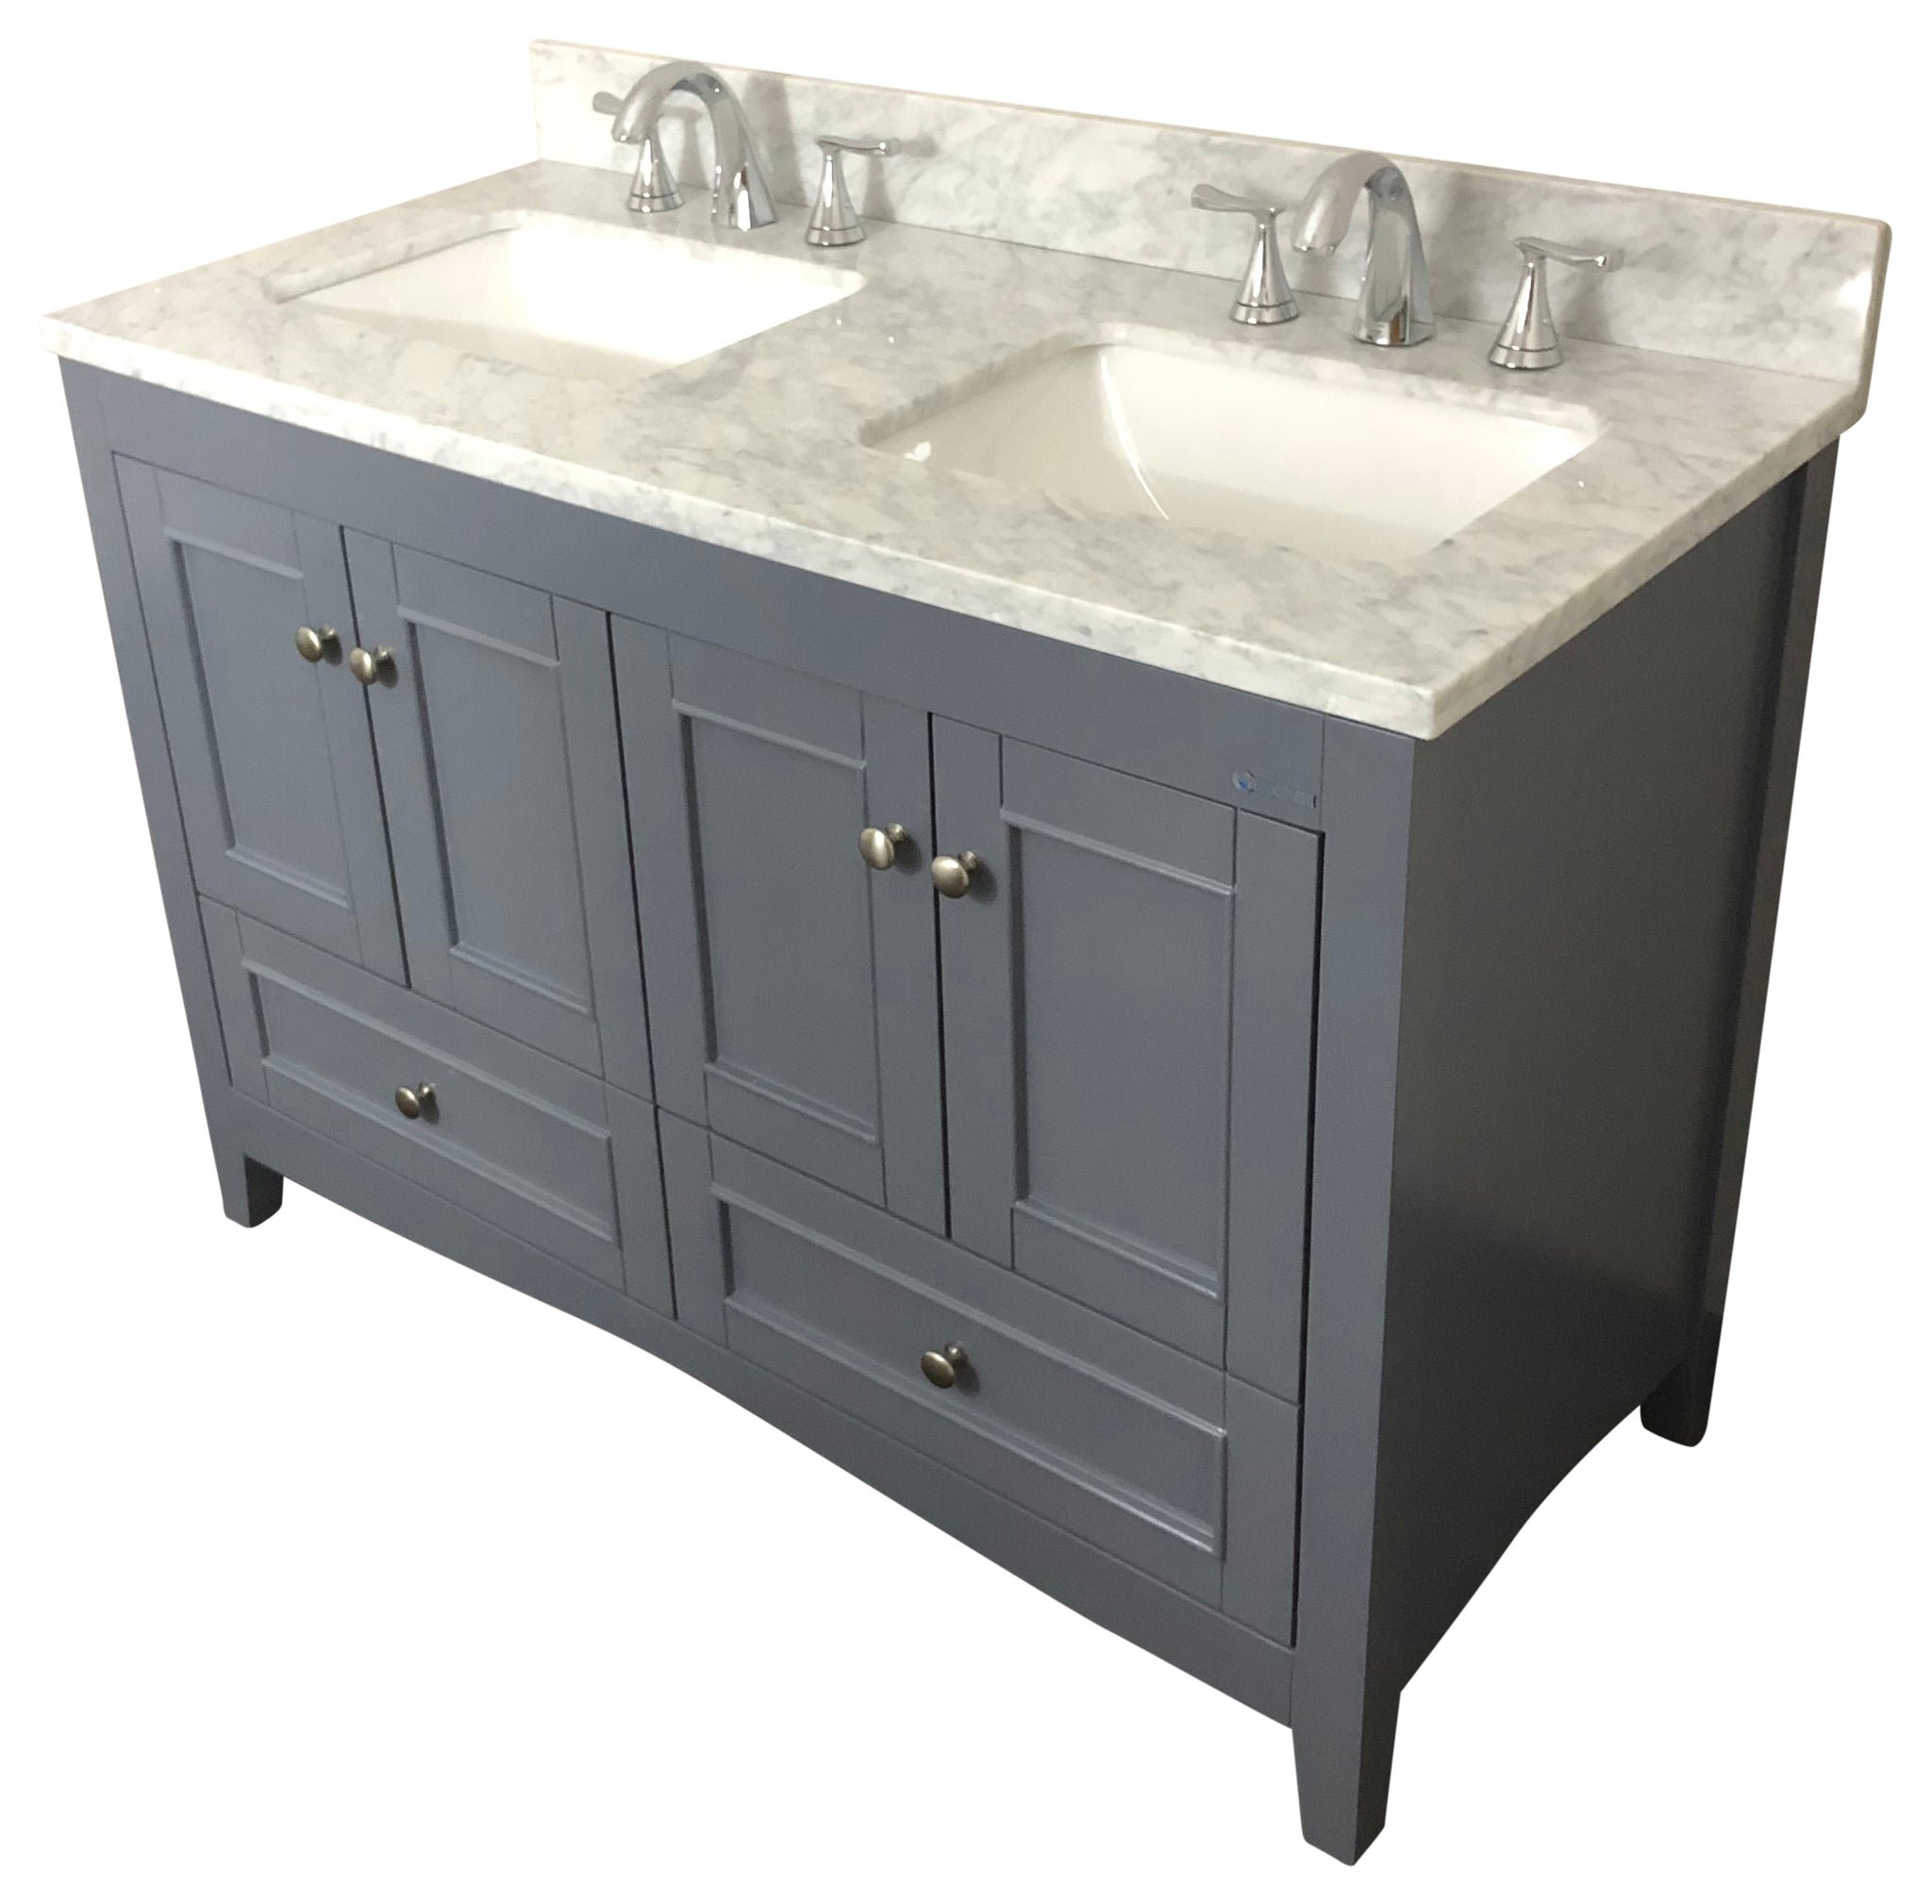 annabelle vanity place royal solid wood bathroom espresso bath